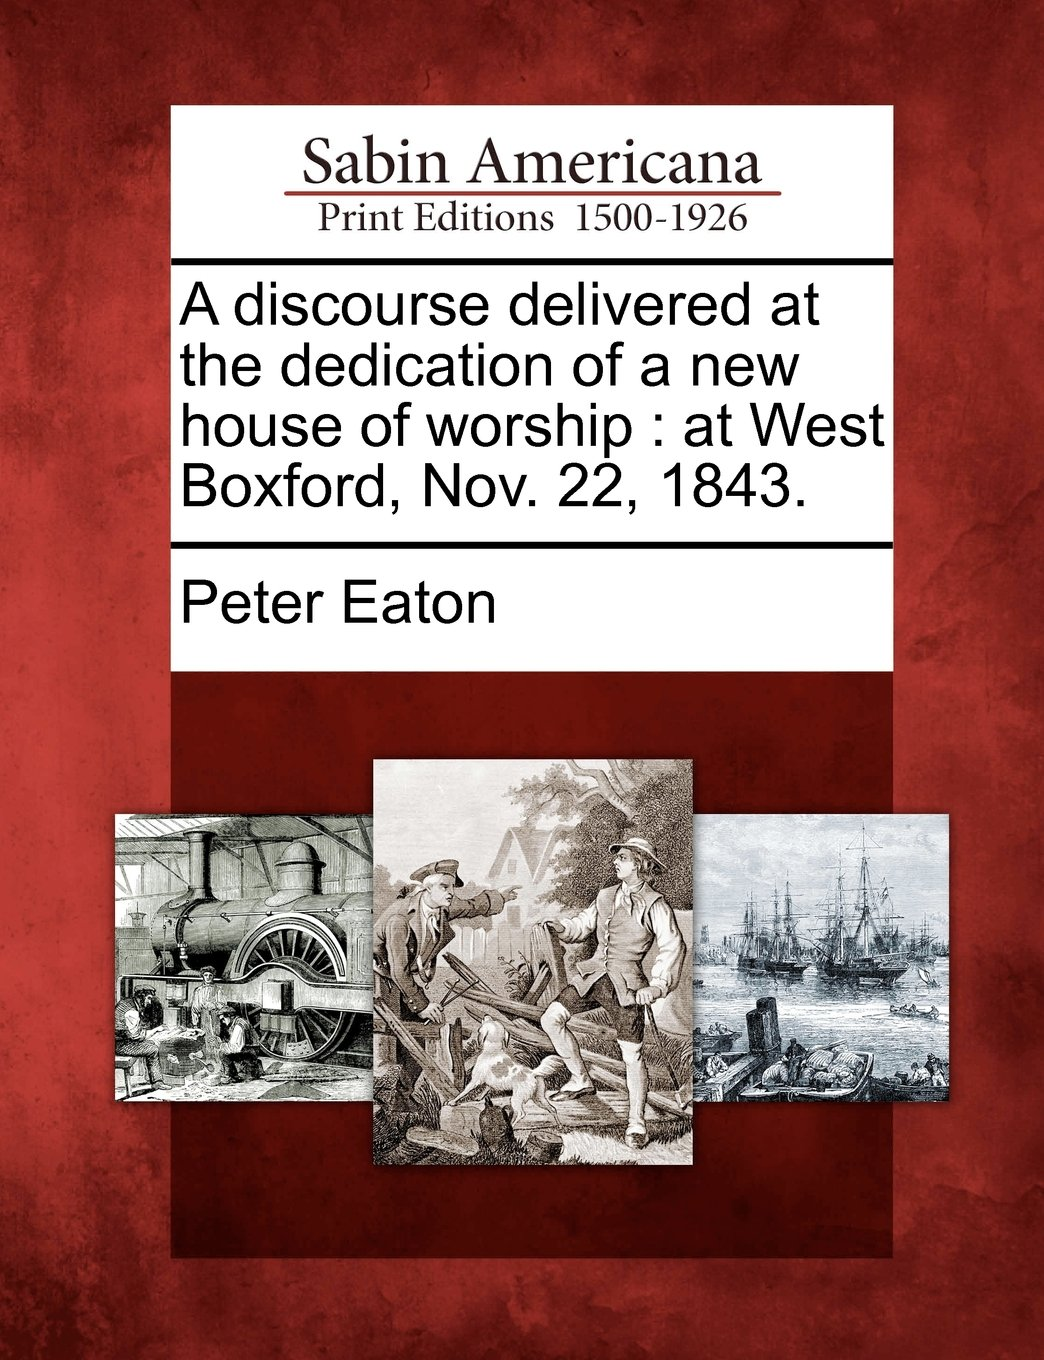 A discourse delivered at the dedication of a new house of worship: at West Boxford, Nov. 22, 1843. ebook